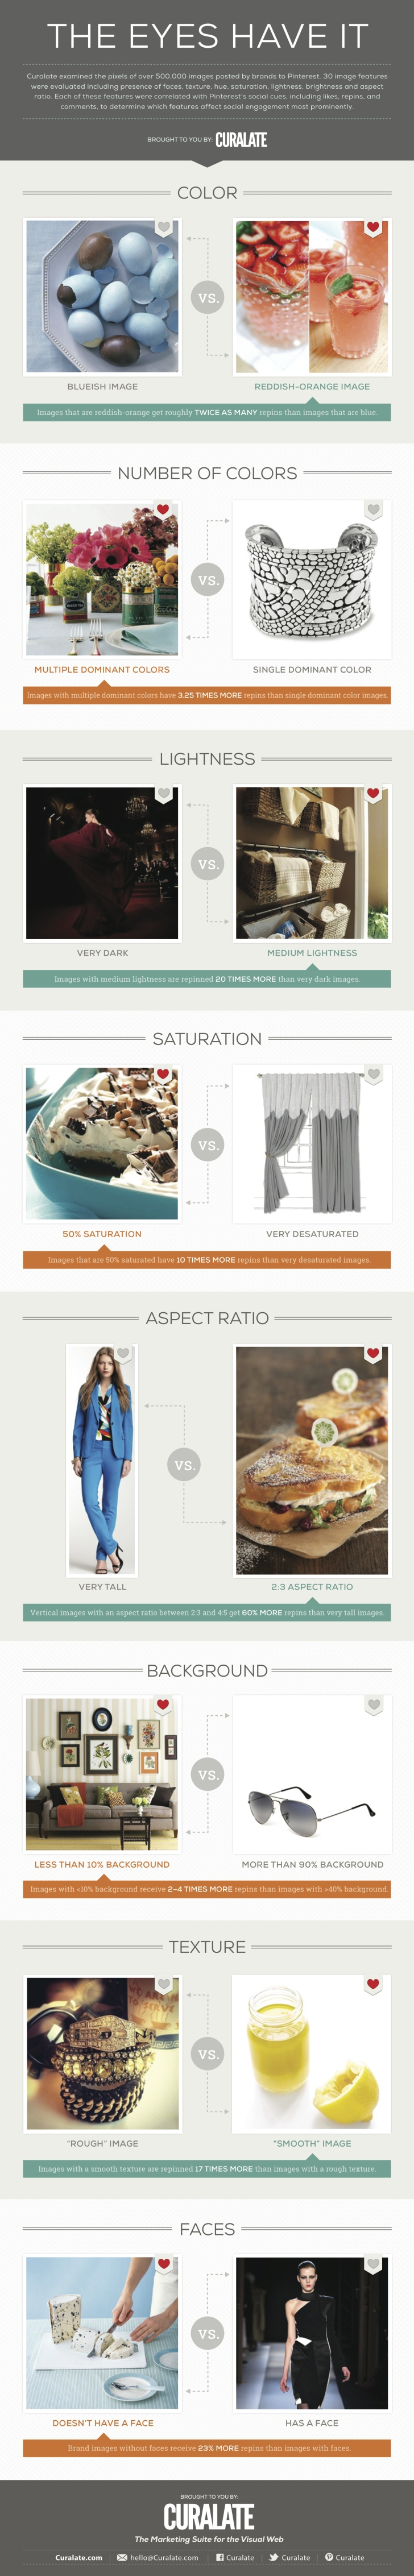 Pinterest - Infographie